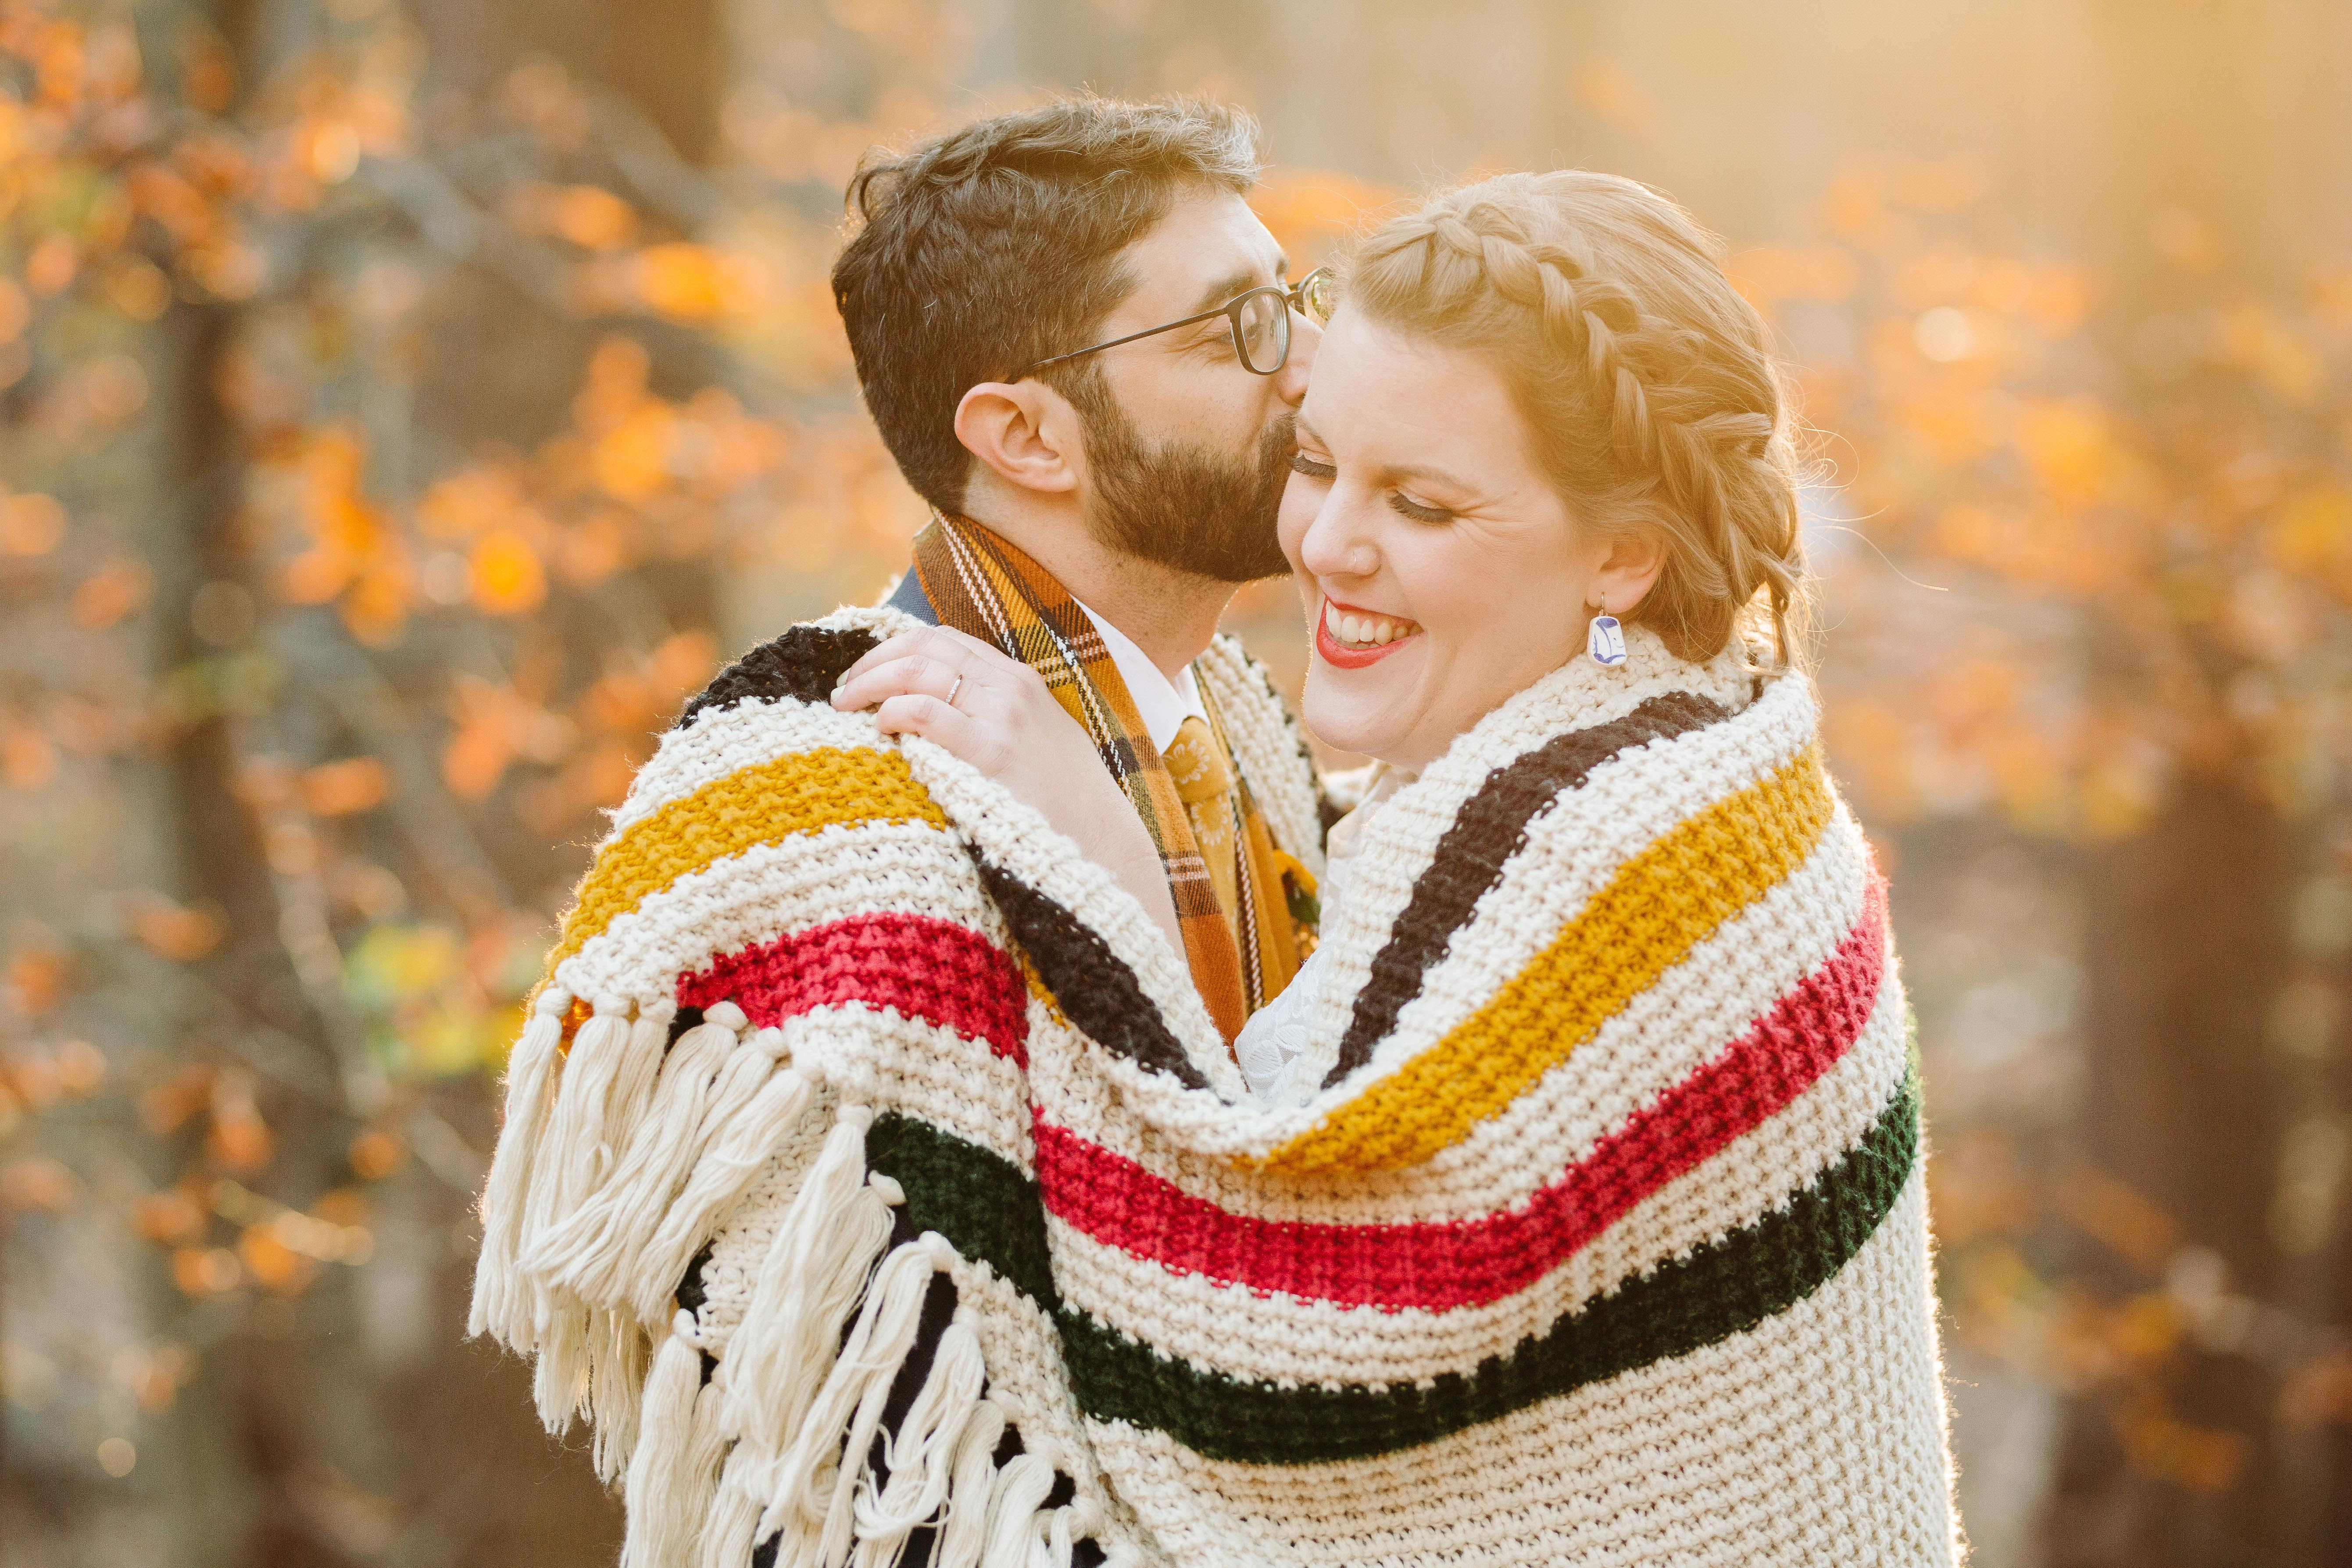 Cozy fall engagement photo  by Cameron Zegers Photography - Seattle